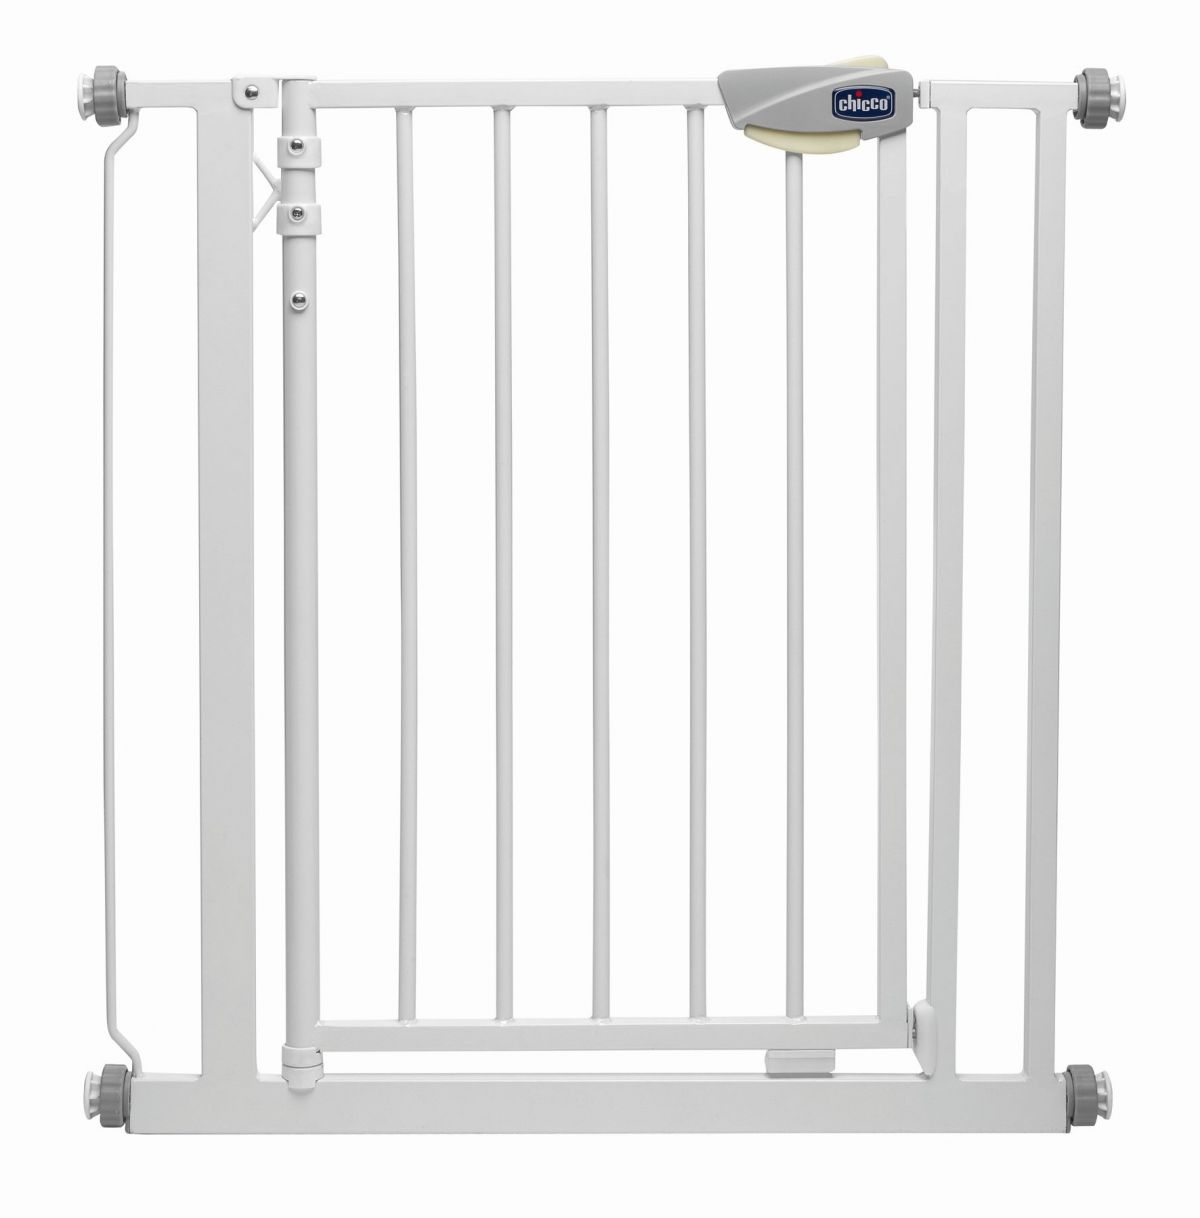 Дверное ограждение Chicco Nightlight Autoclose safety gate 76-81 см, цвет White